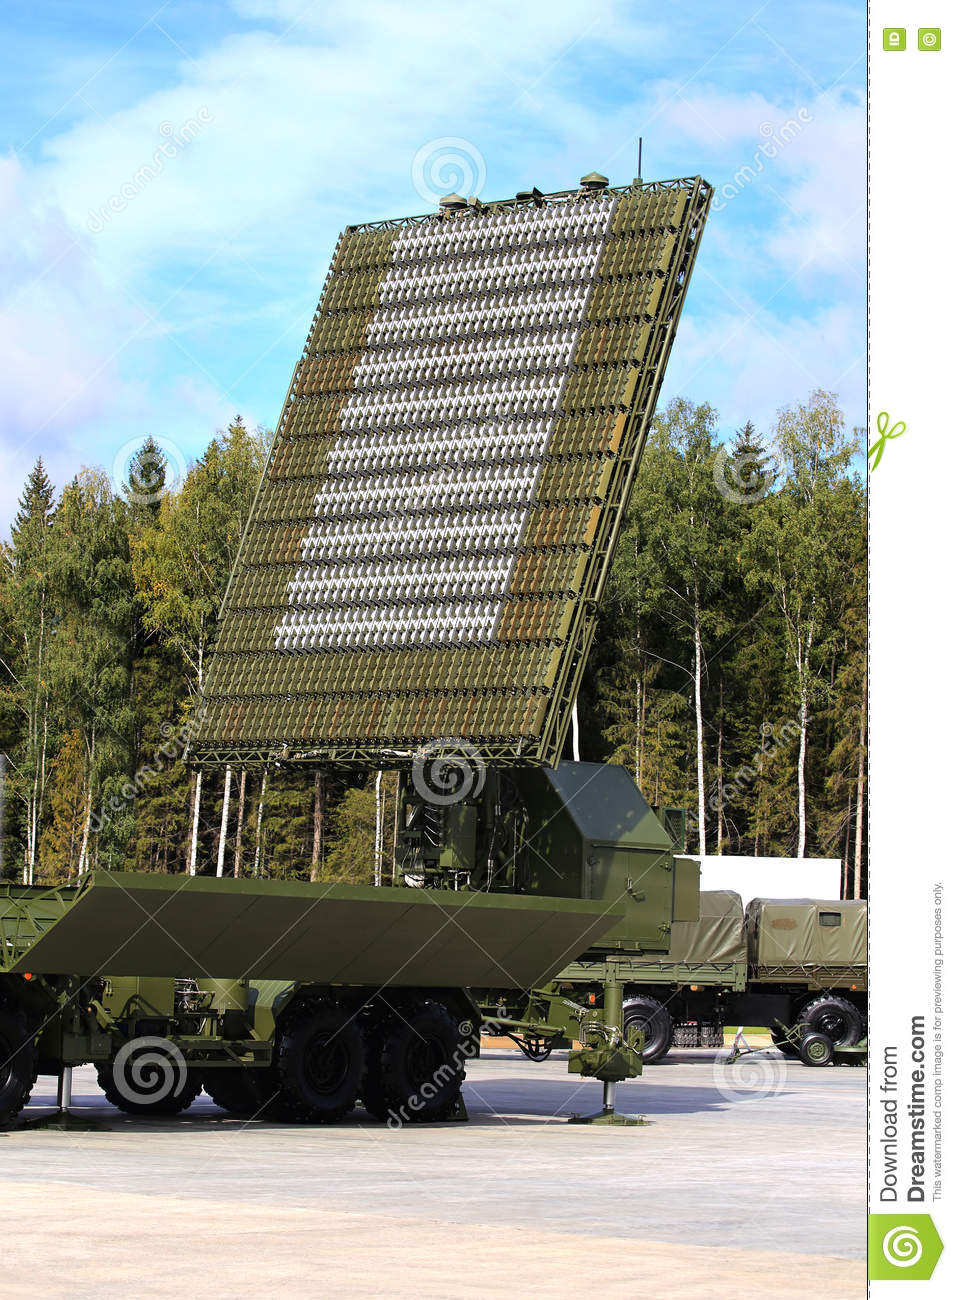 Radar Antenna Of The Air Defence System Stock Photo - Image of